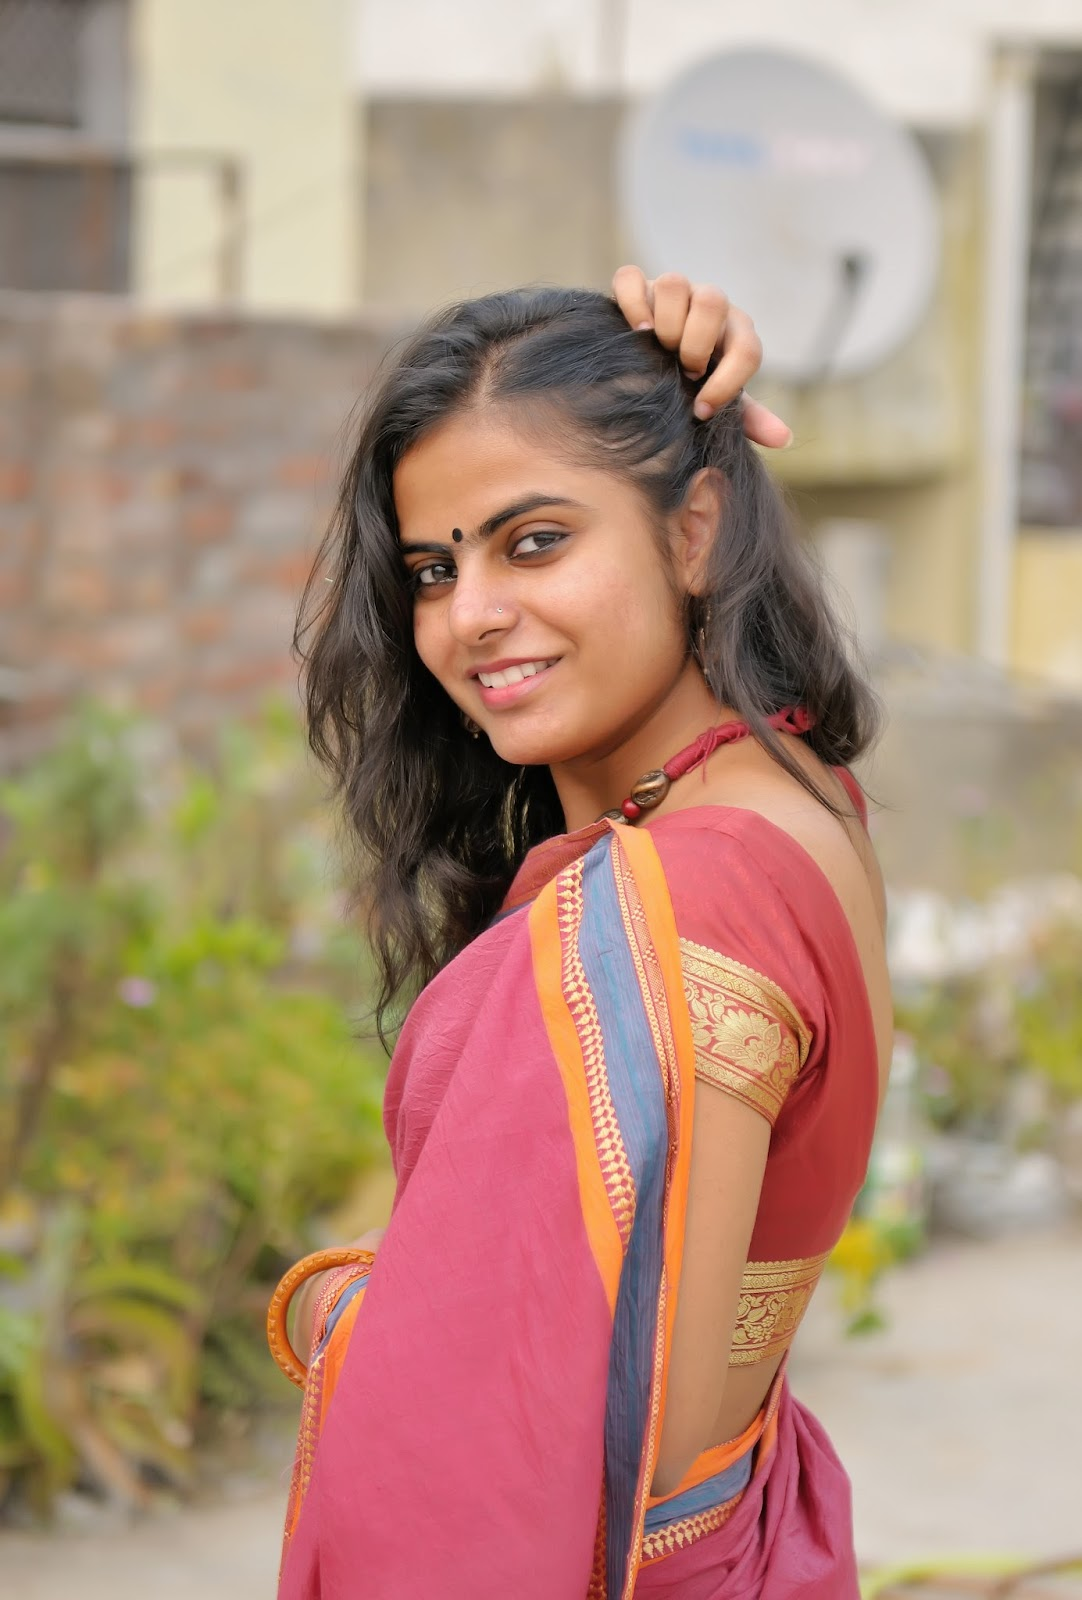 50 Stunning High Quality Images of Indian Girls in Saree!